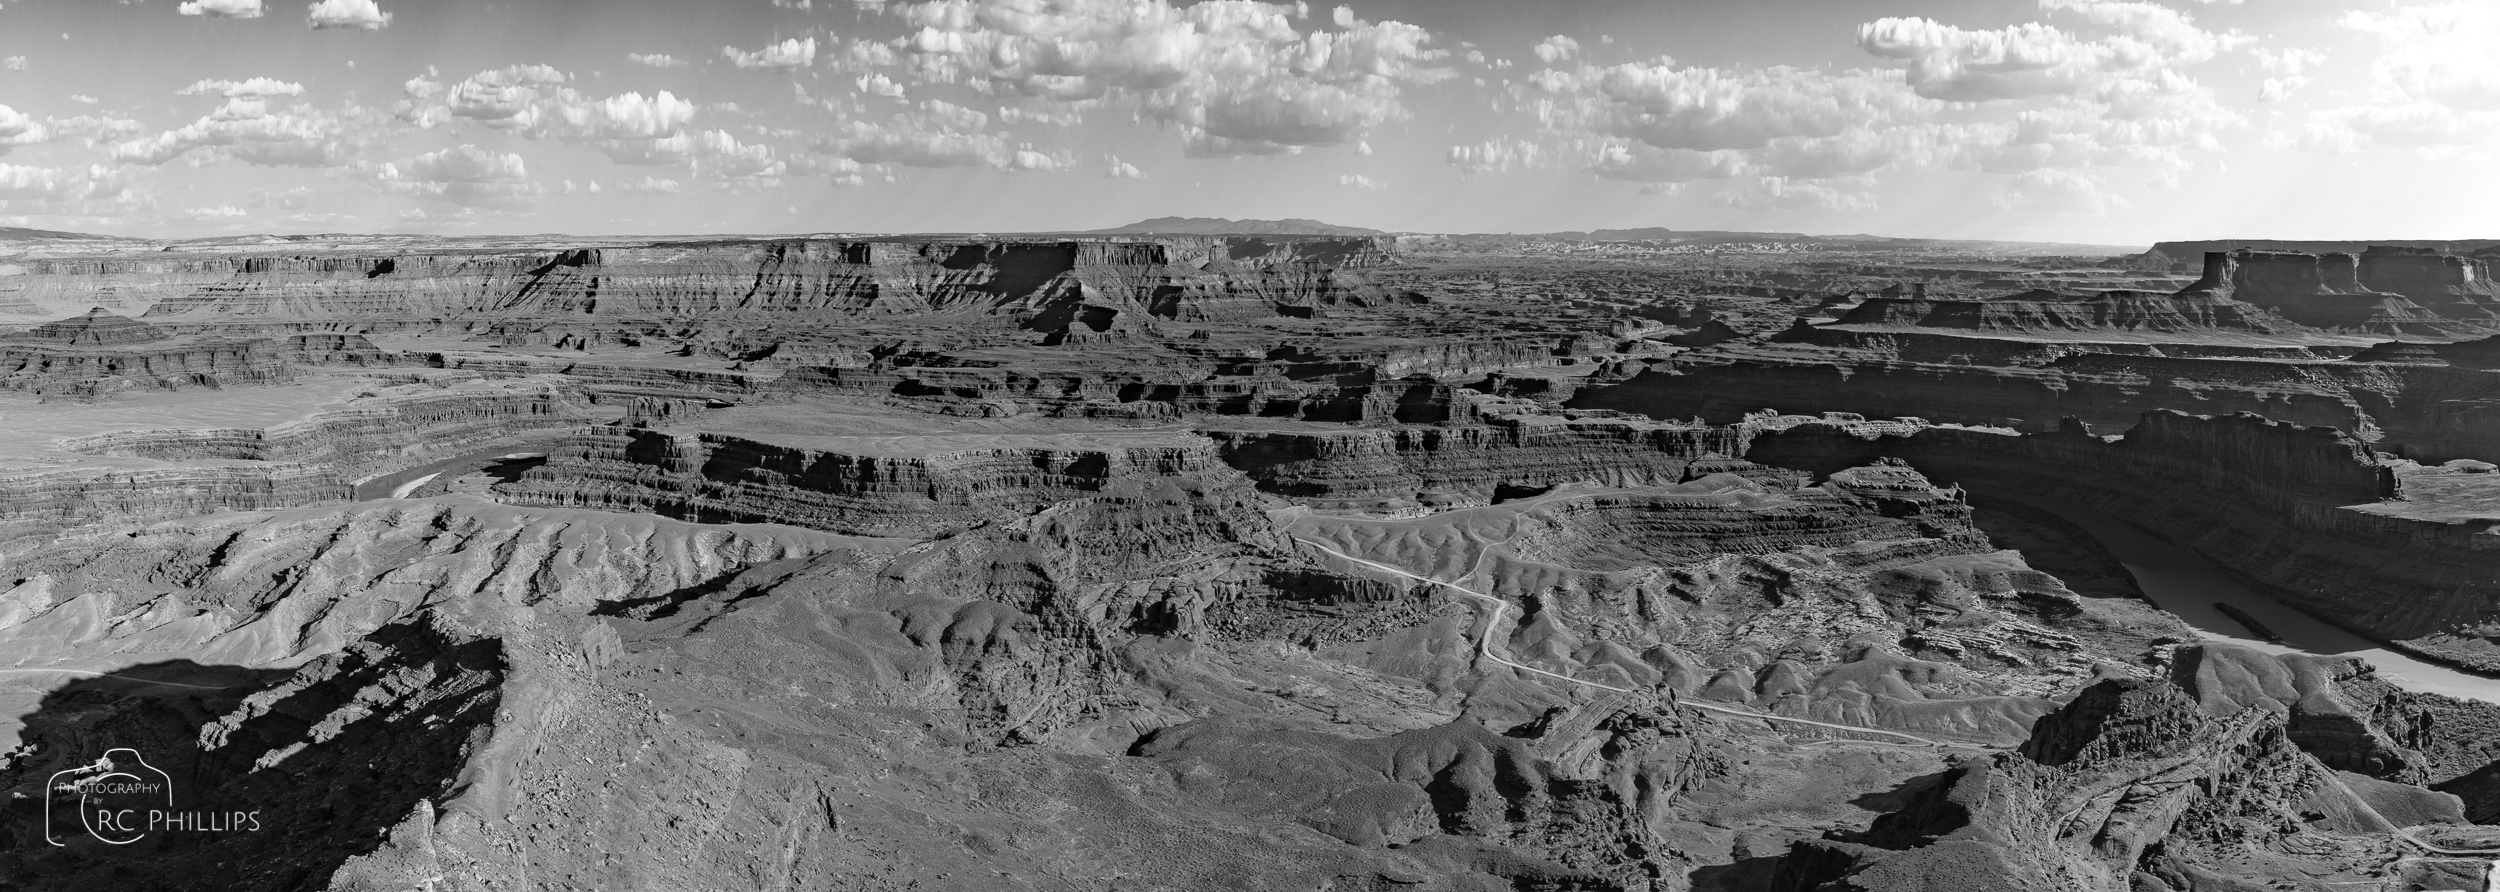 Daytime at Dead Horse Point State Park, Utah.